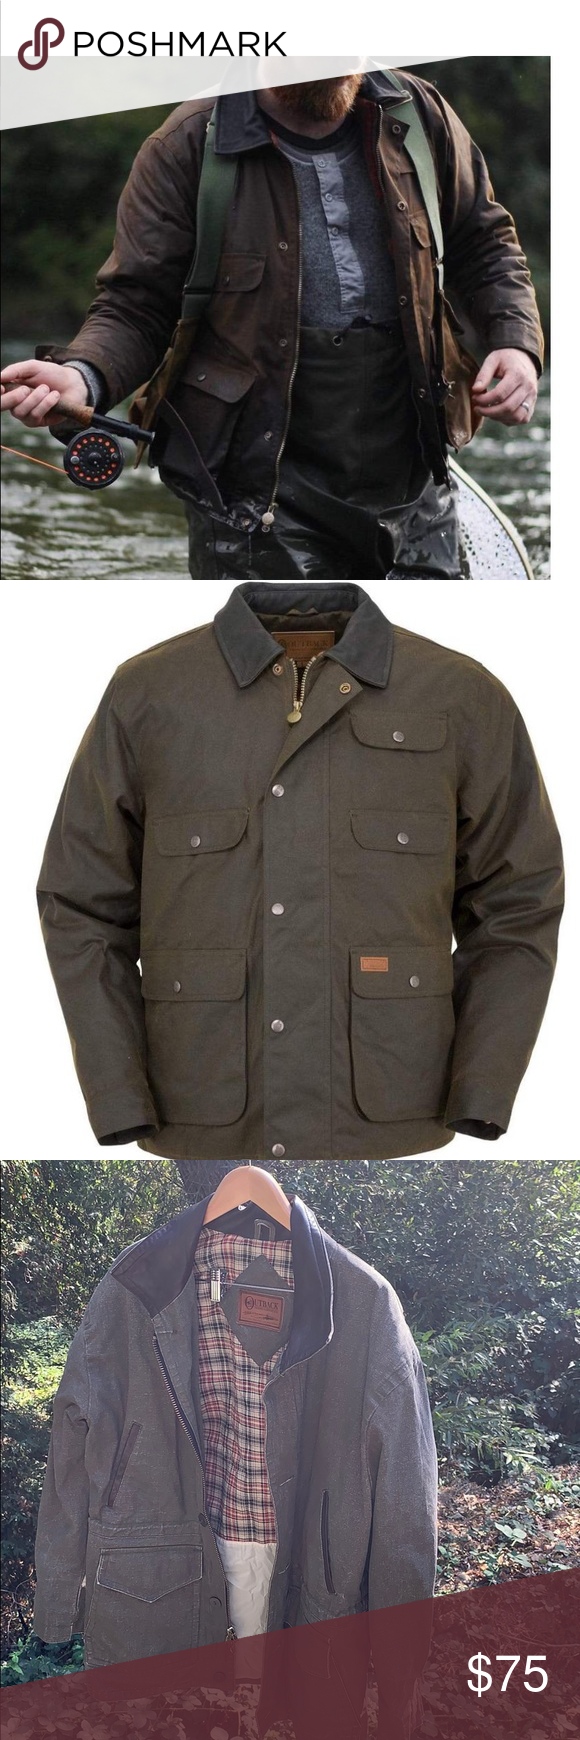 Outback Trading Co Ltd Overlander jacket Urban